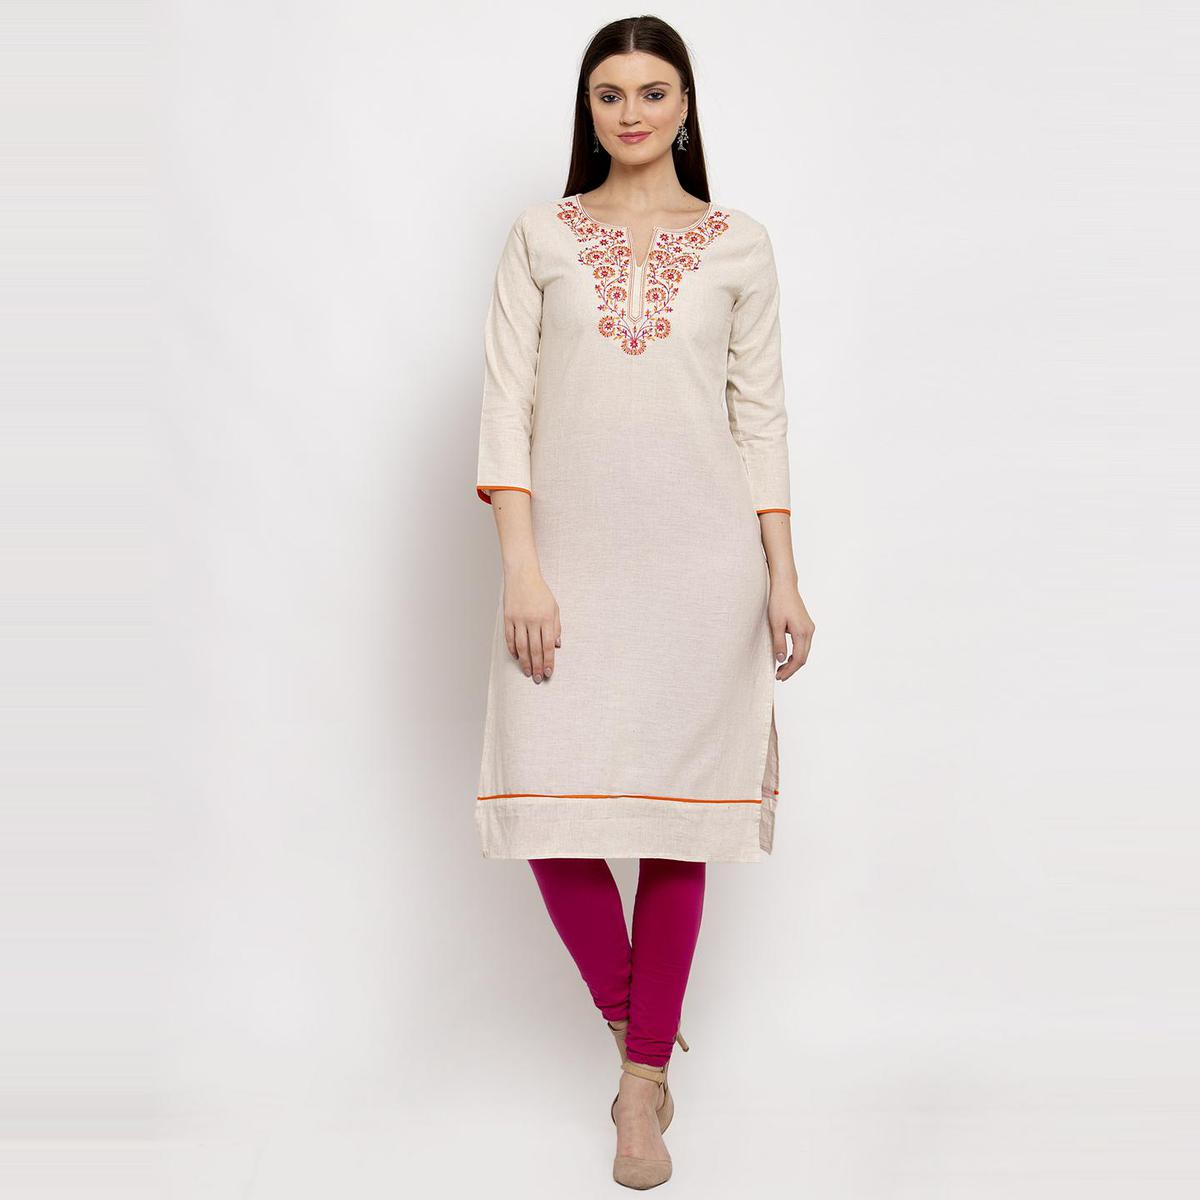 Aujjessa - Off White Colored Floral Embroidered Cotton Straight Kurti